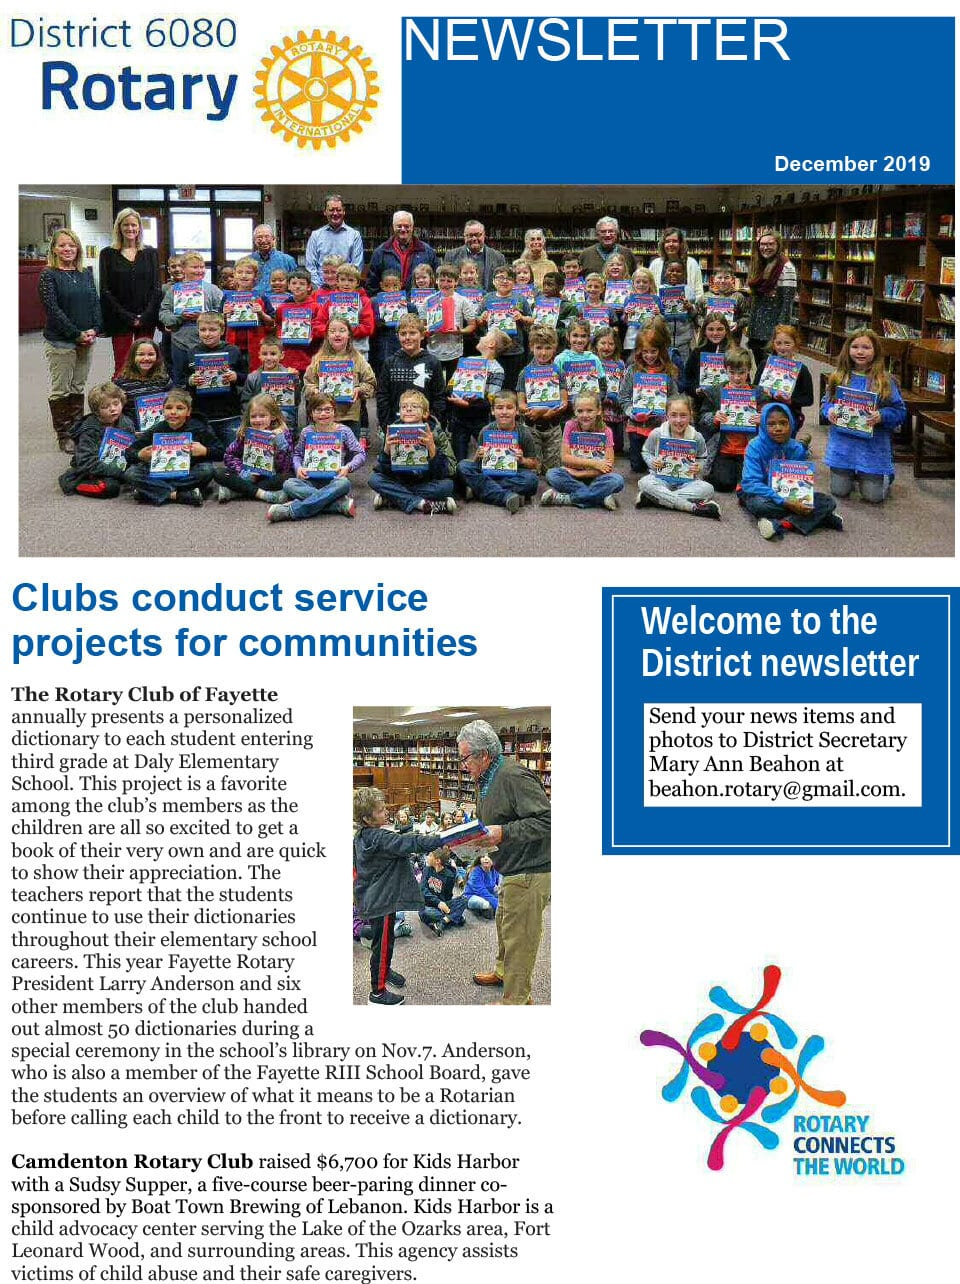 December 2019 District Governor Newsletter